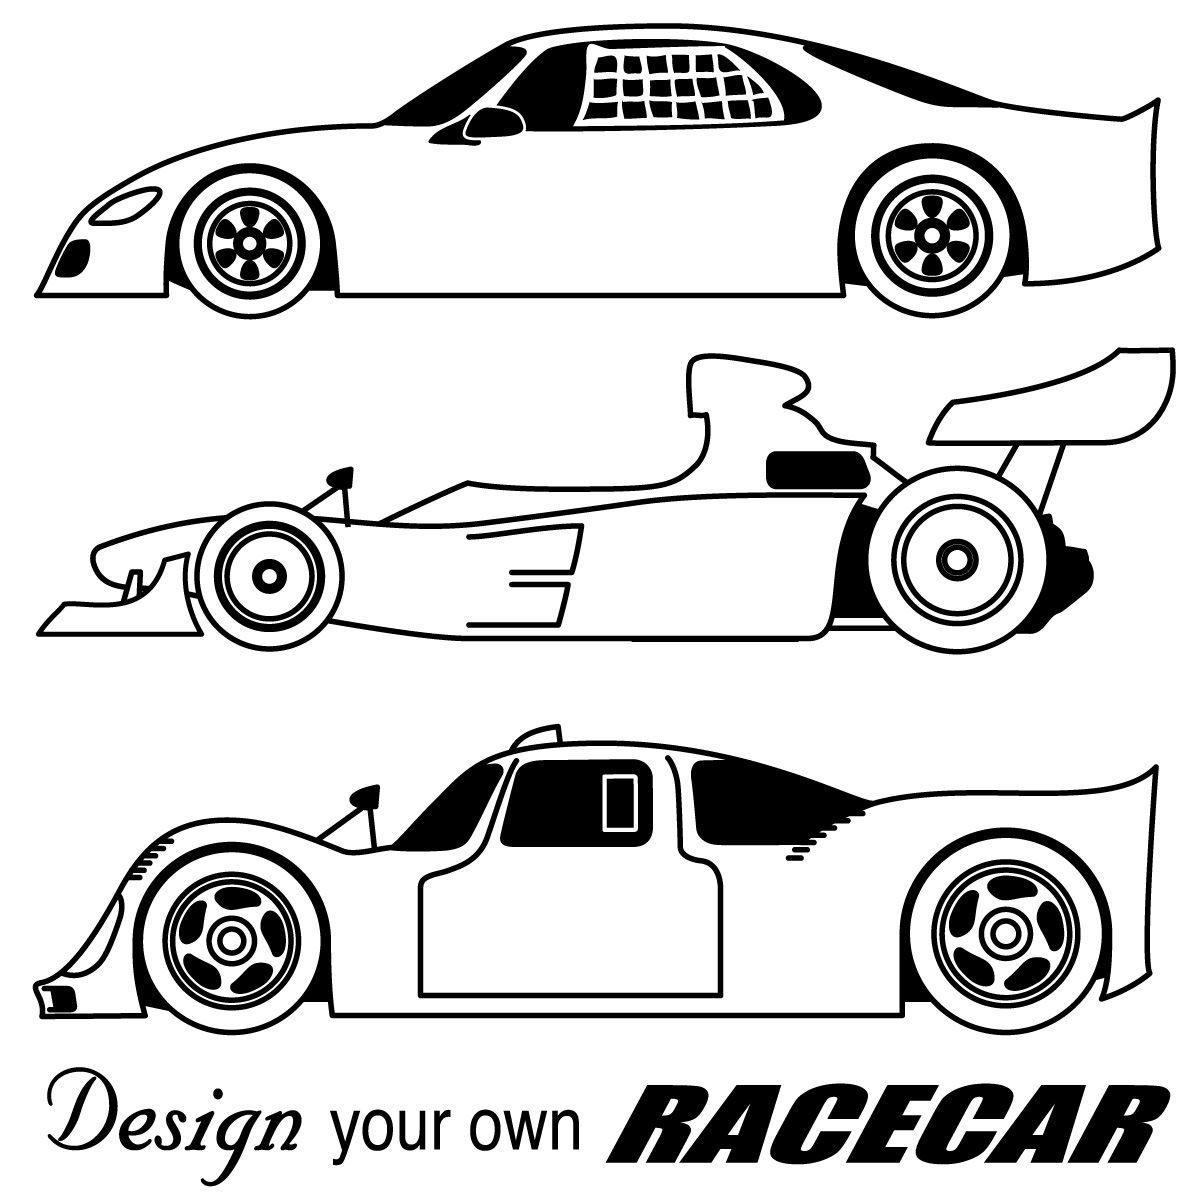 The Marvelous Blank Race Car Coloring Pages For Blank Race Car Templates Digital Imagery Belo In 2020 Race Car Coloring Pages Sports Coloring Pages Cars Coloring Pages